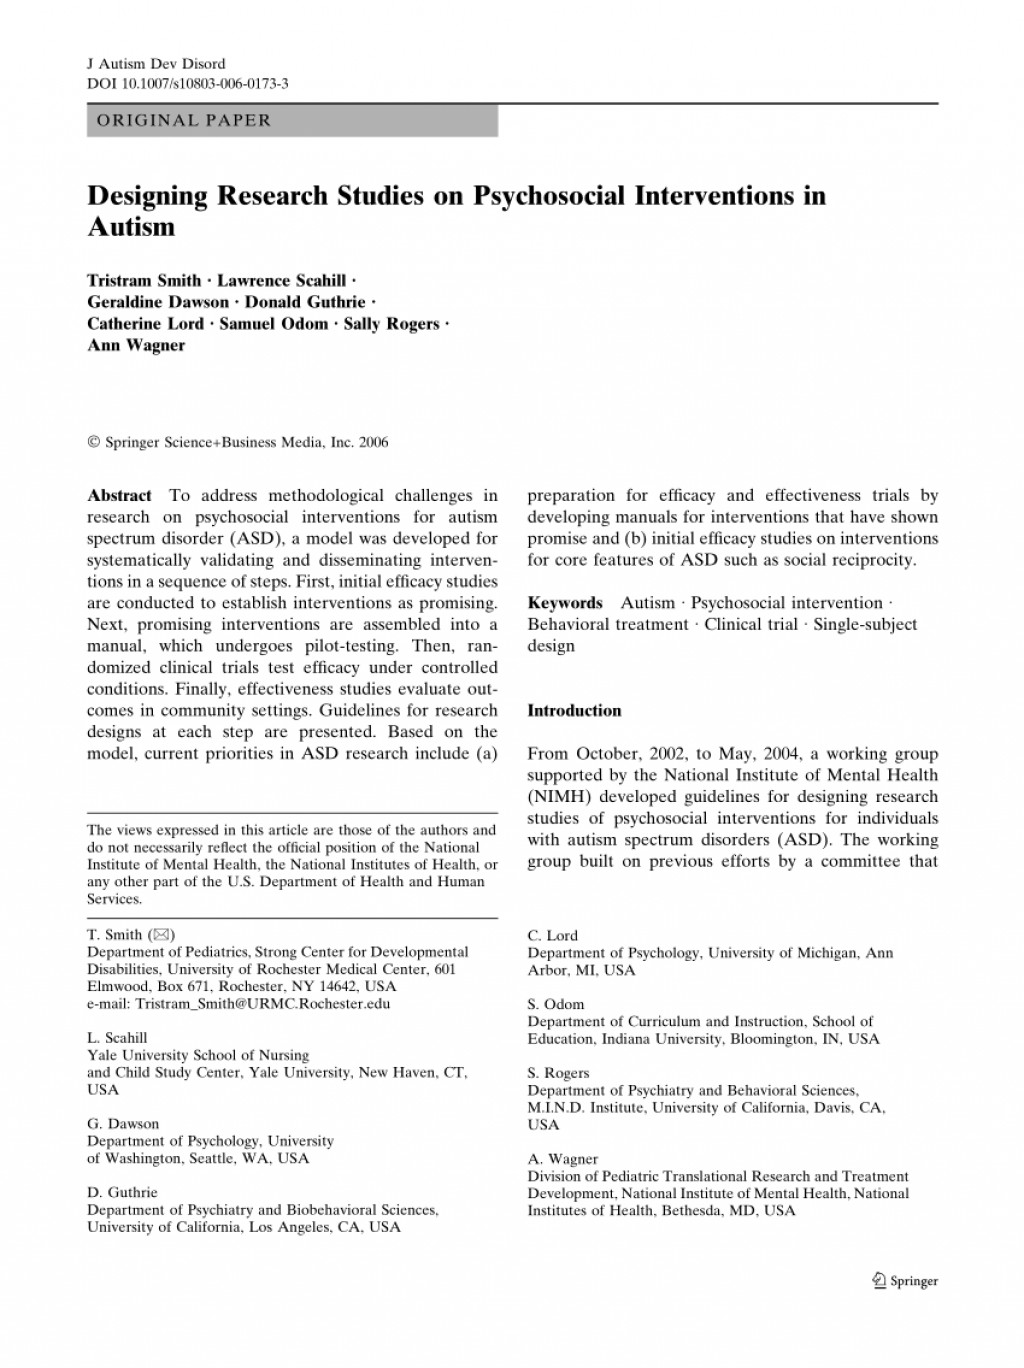 001 Designing Research Studies On Psychosocial Interventions In Autism Paper Breathtaking Large